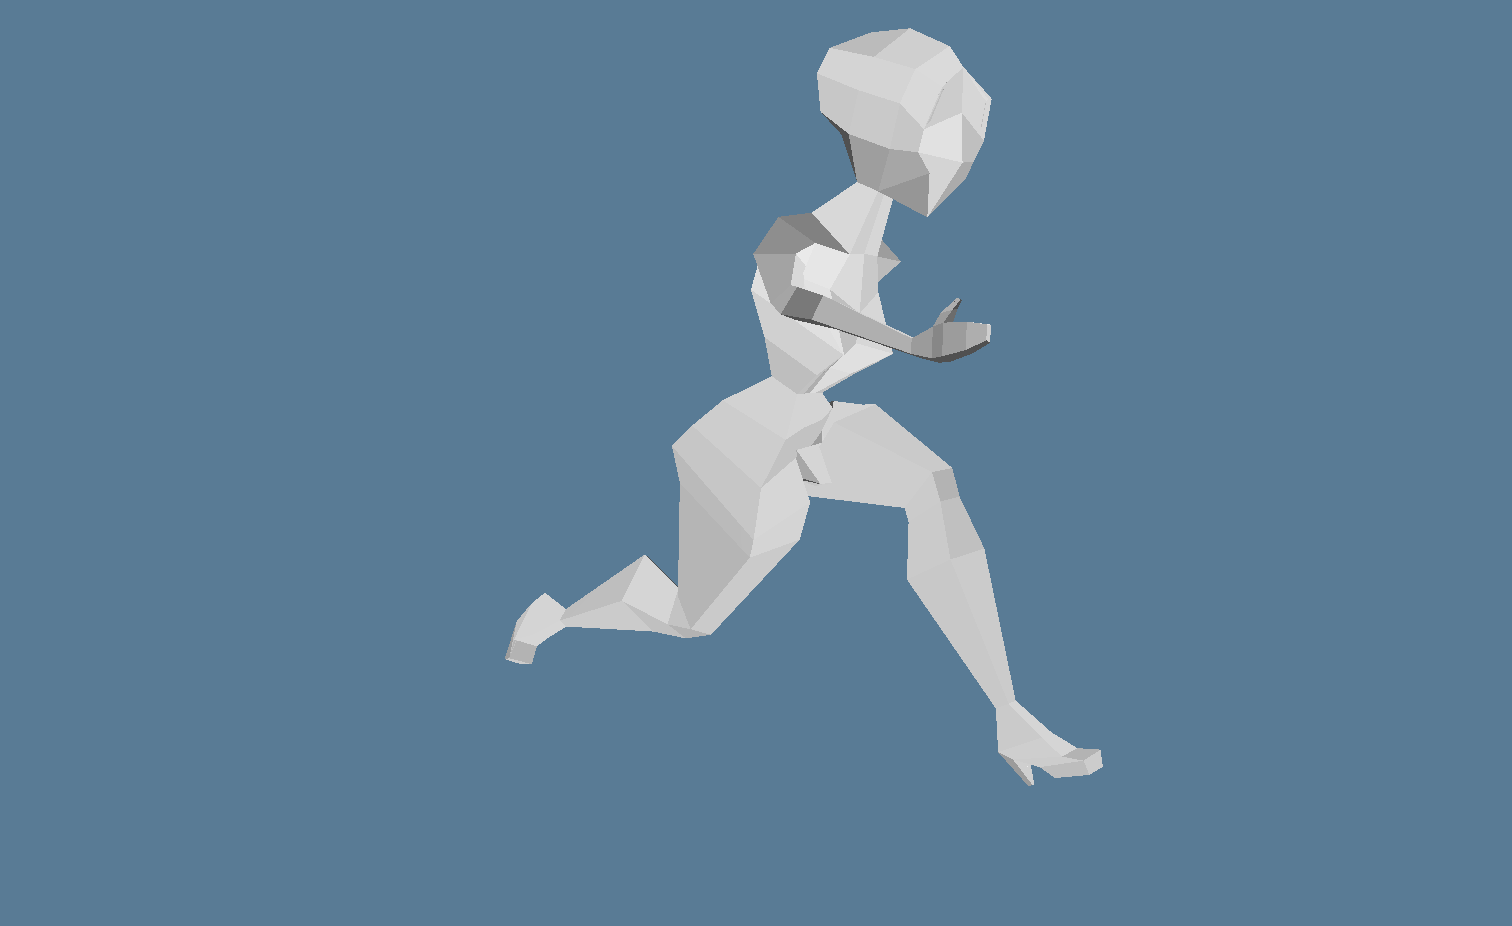 Animated low-poly character rendered by Dotrix